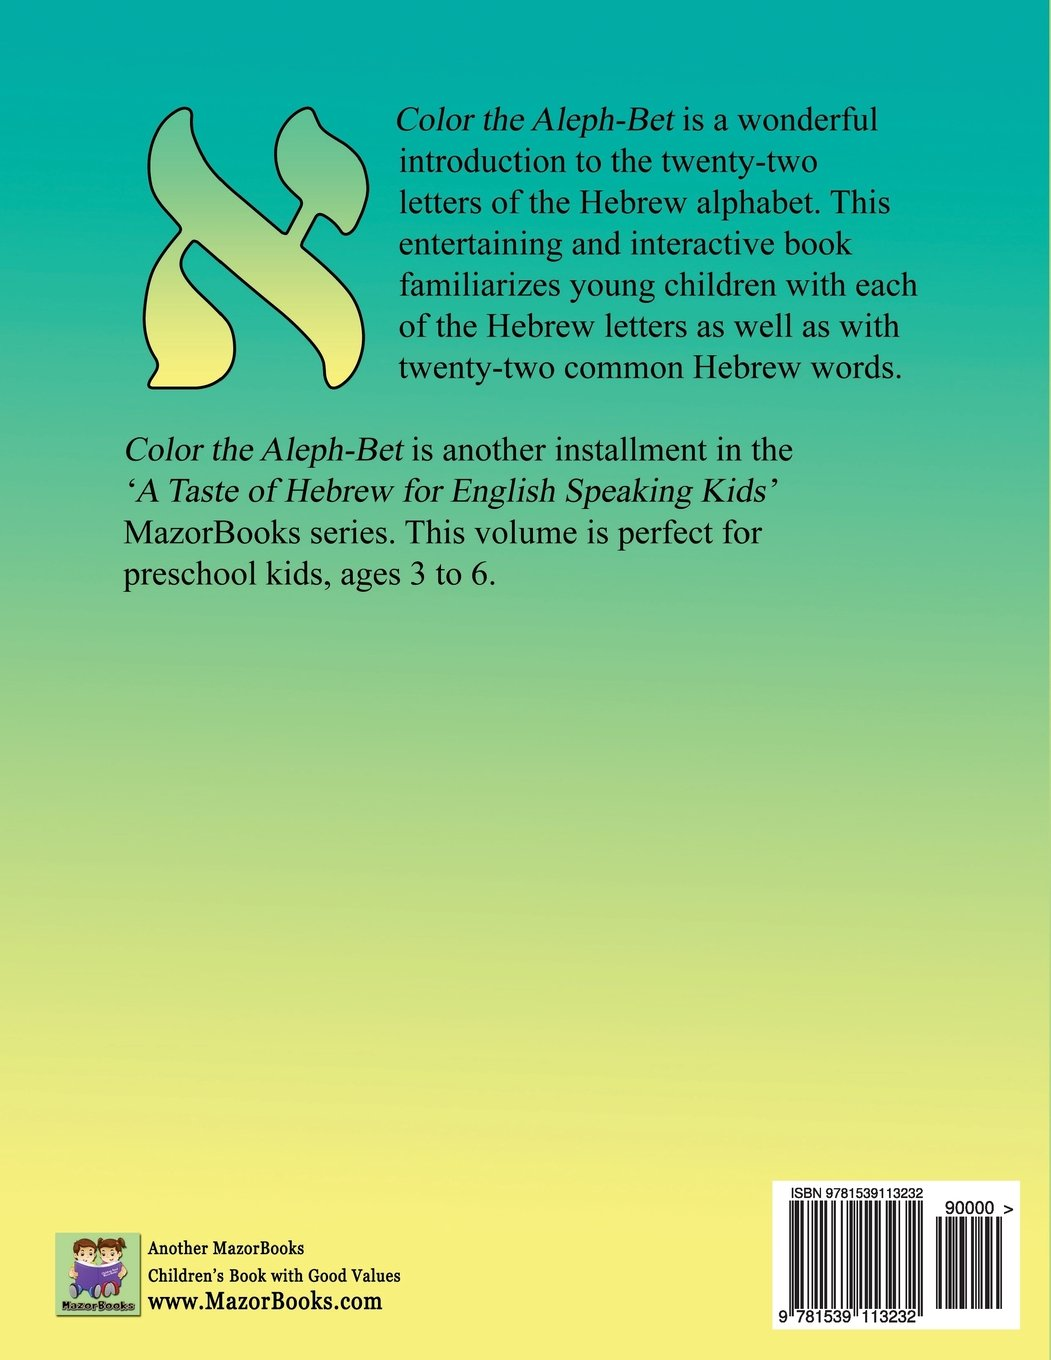 Amazon.com: Color the Aleph-Bet: A Taste of Hebrew for English ...